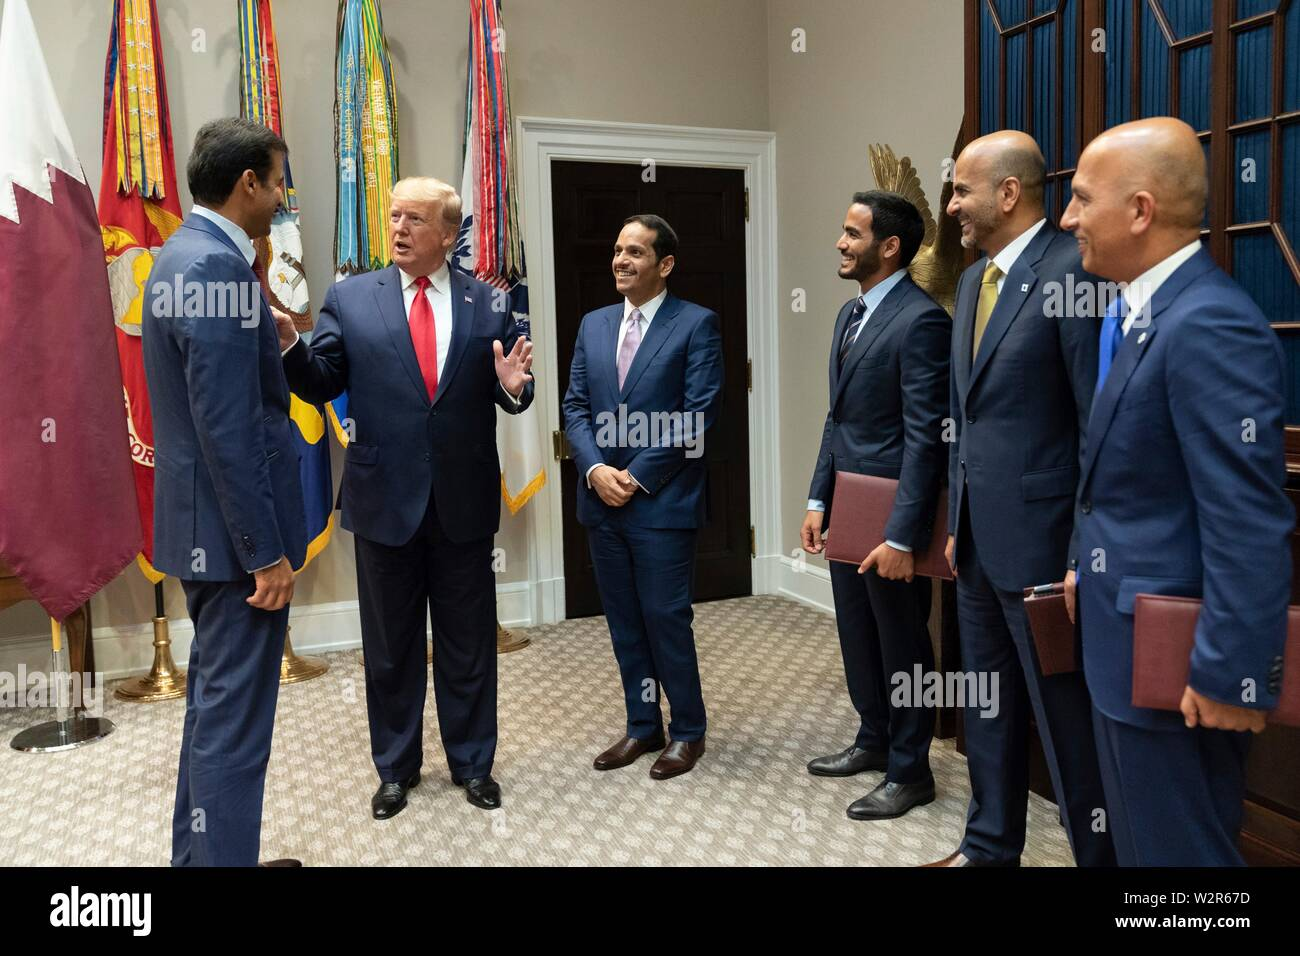 U.S President Donald Trump chats with the Emir of Qatar Tamin bin Hamad Al Thani, left, and members of his delegation in the Roosevelt Room of the White House July 9, 2019 in Washington, DC. - Stock Image